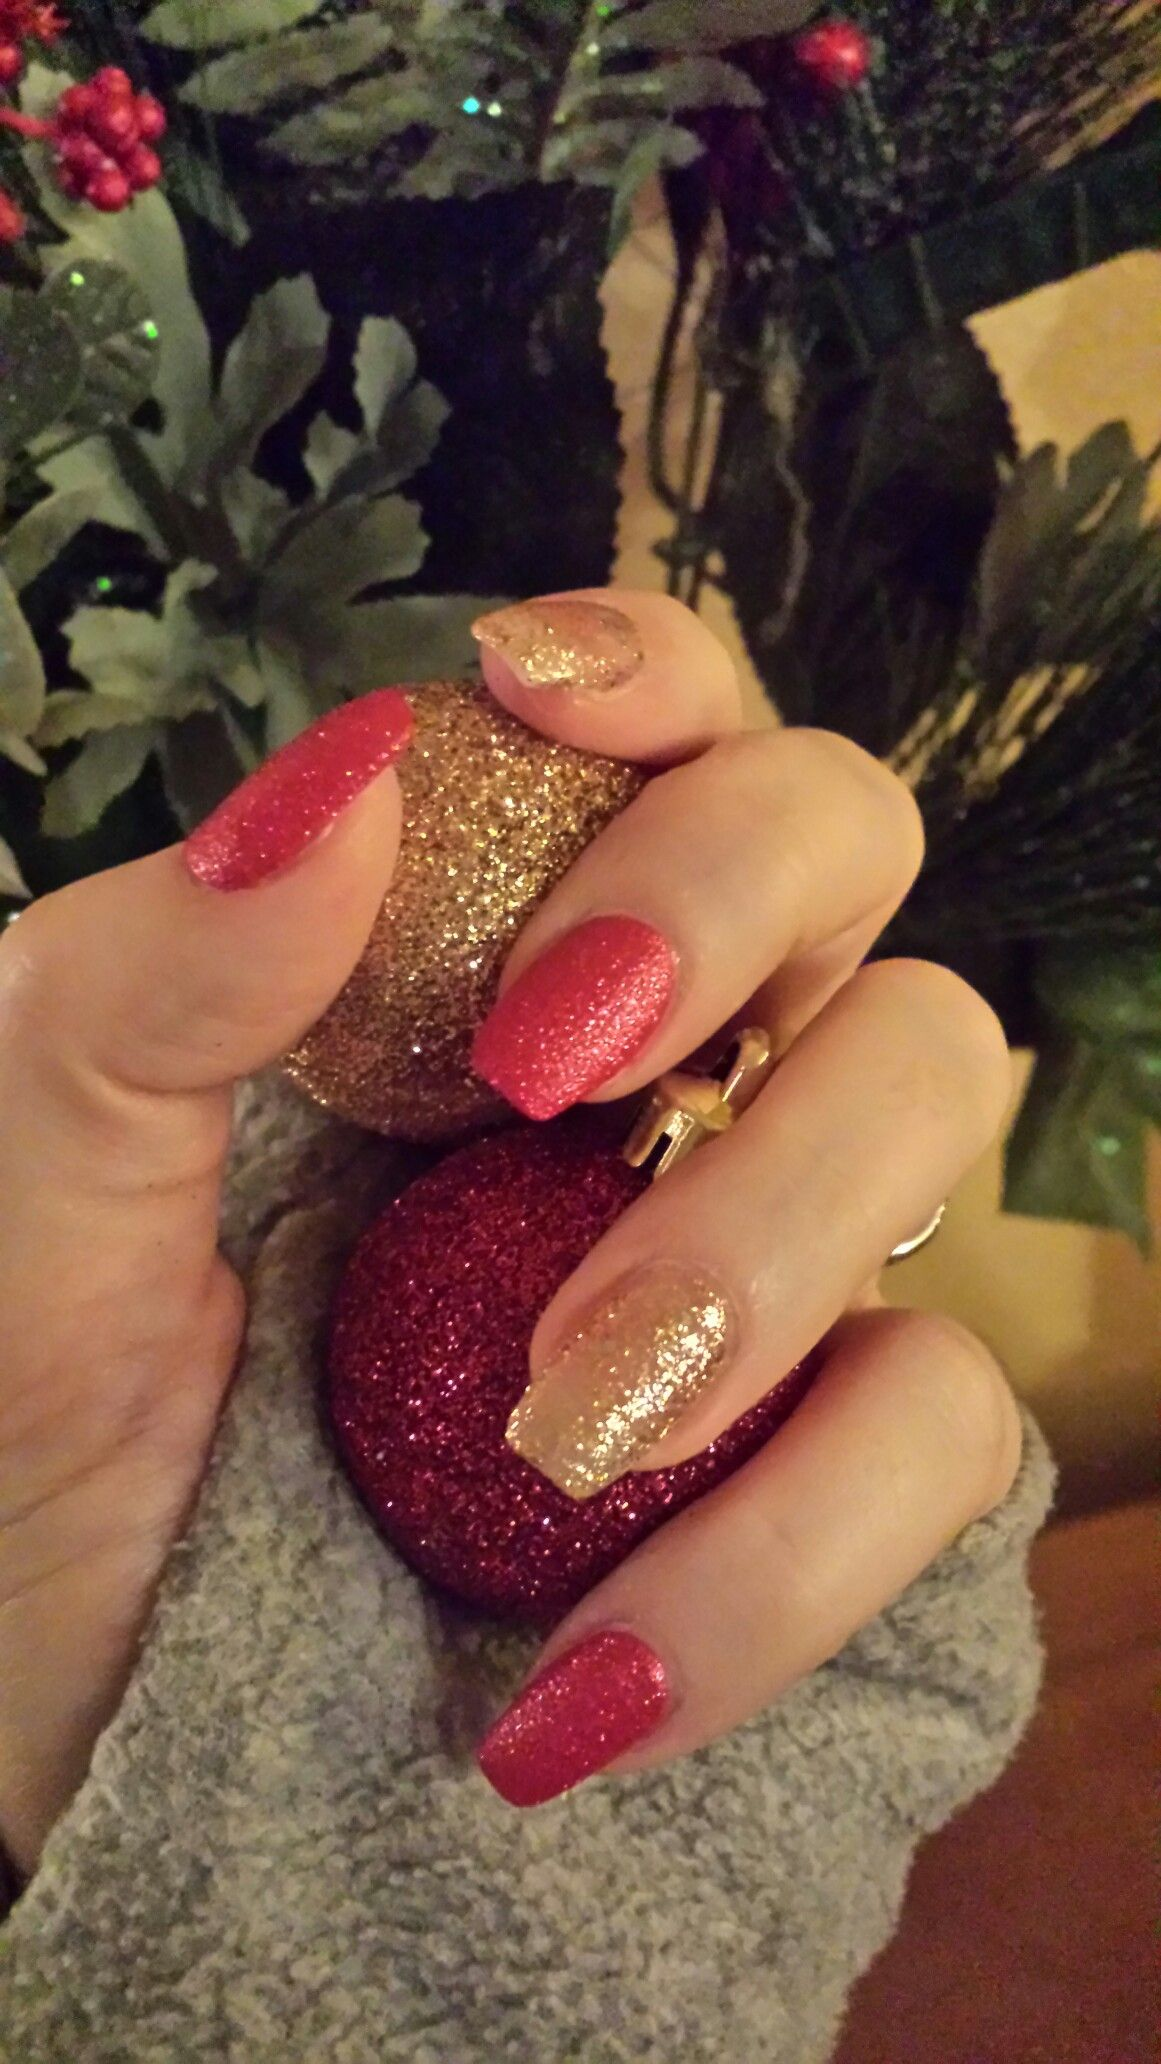 Christmas Nails Tumblr Coffin.Christmas Nails Red Gold Glitter Nail Art Coffin